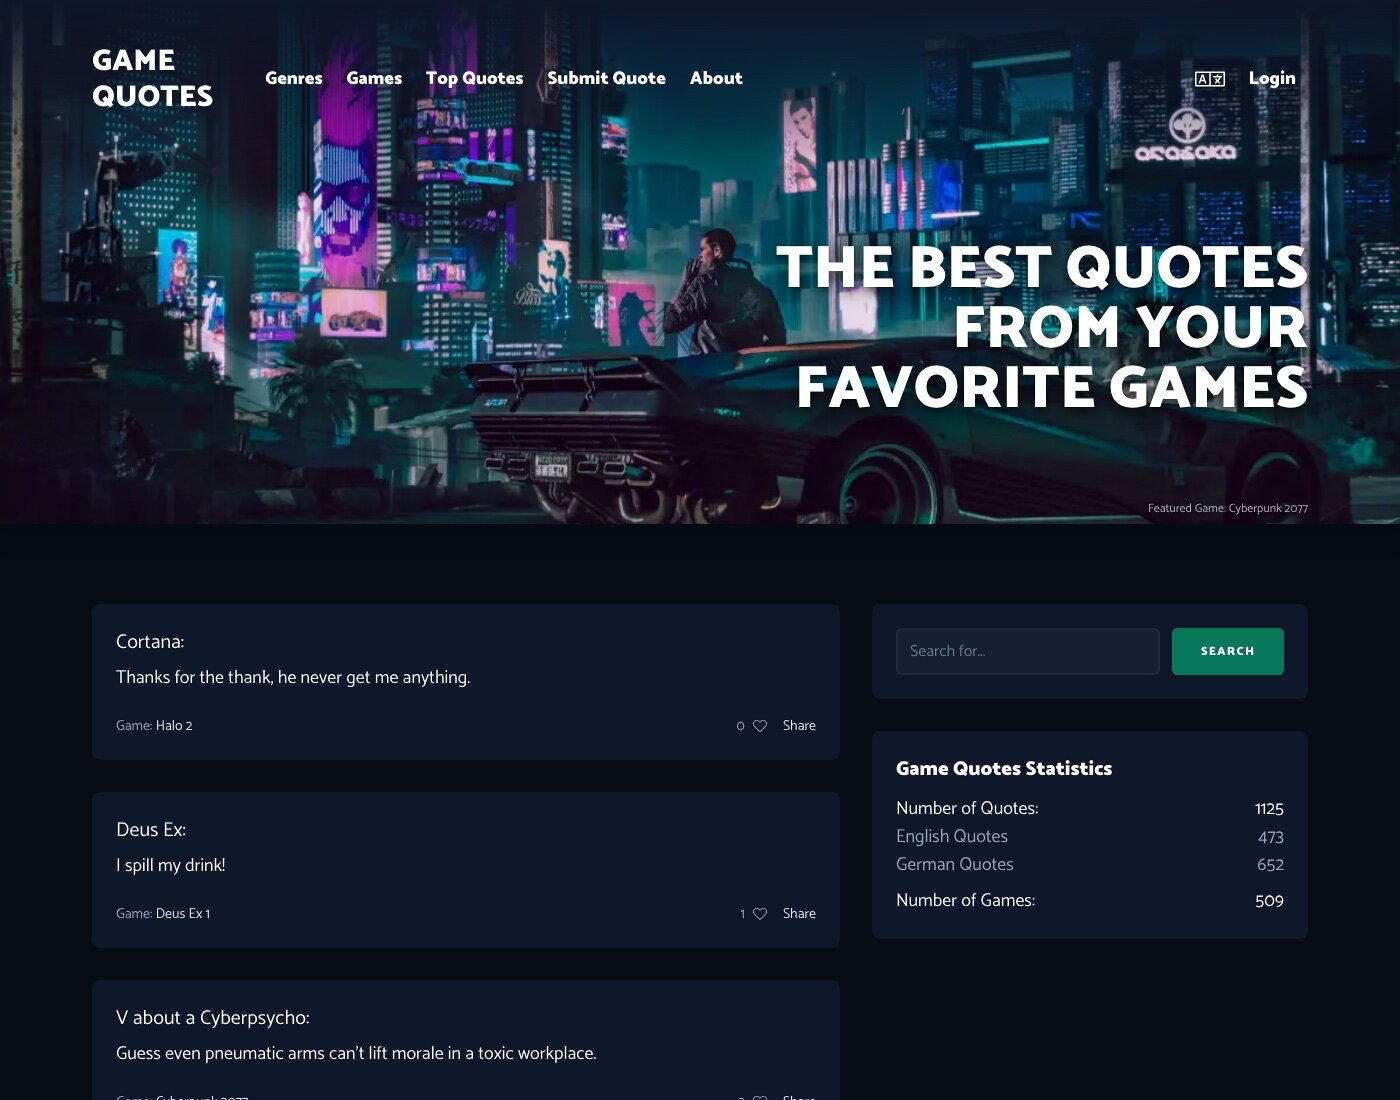 Screenshot of the new version of Game Quotes